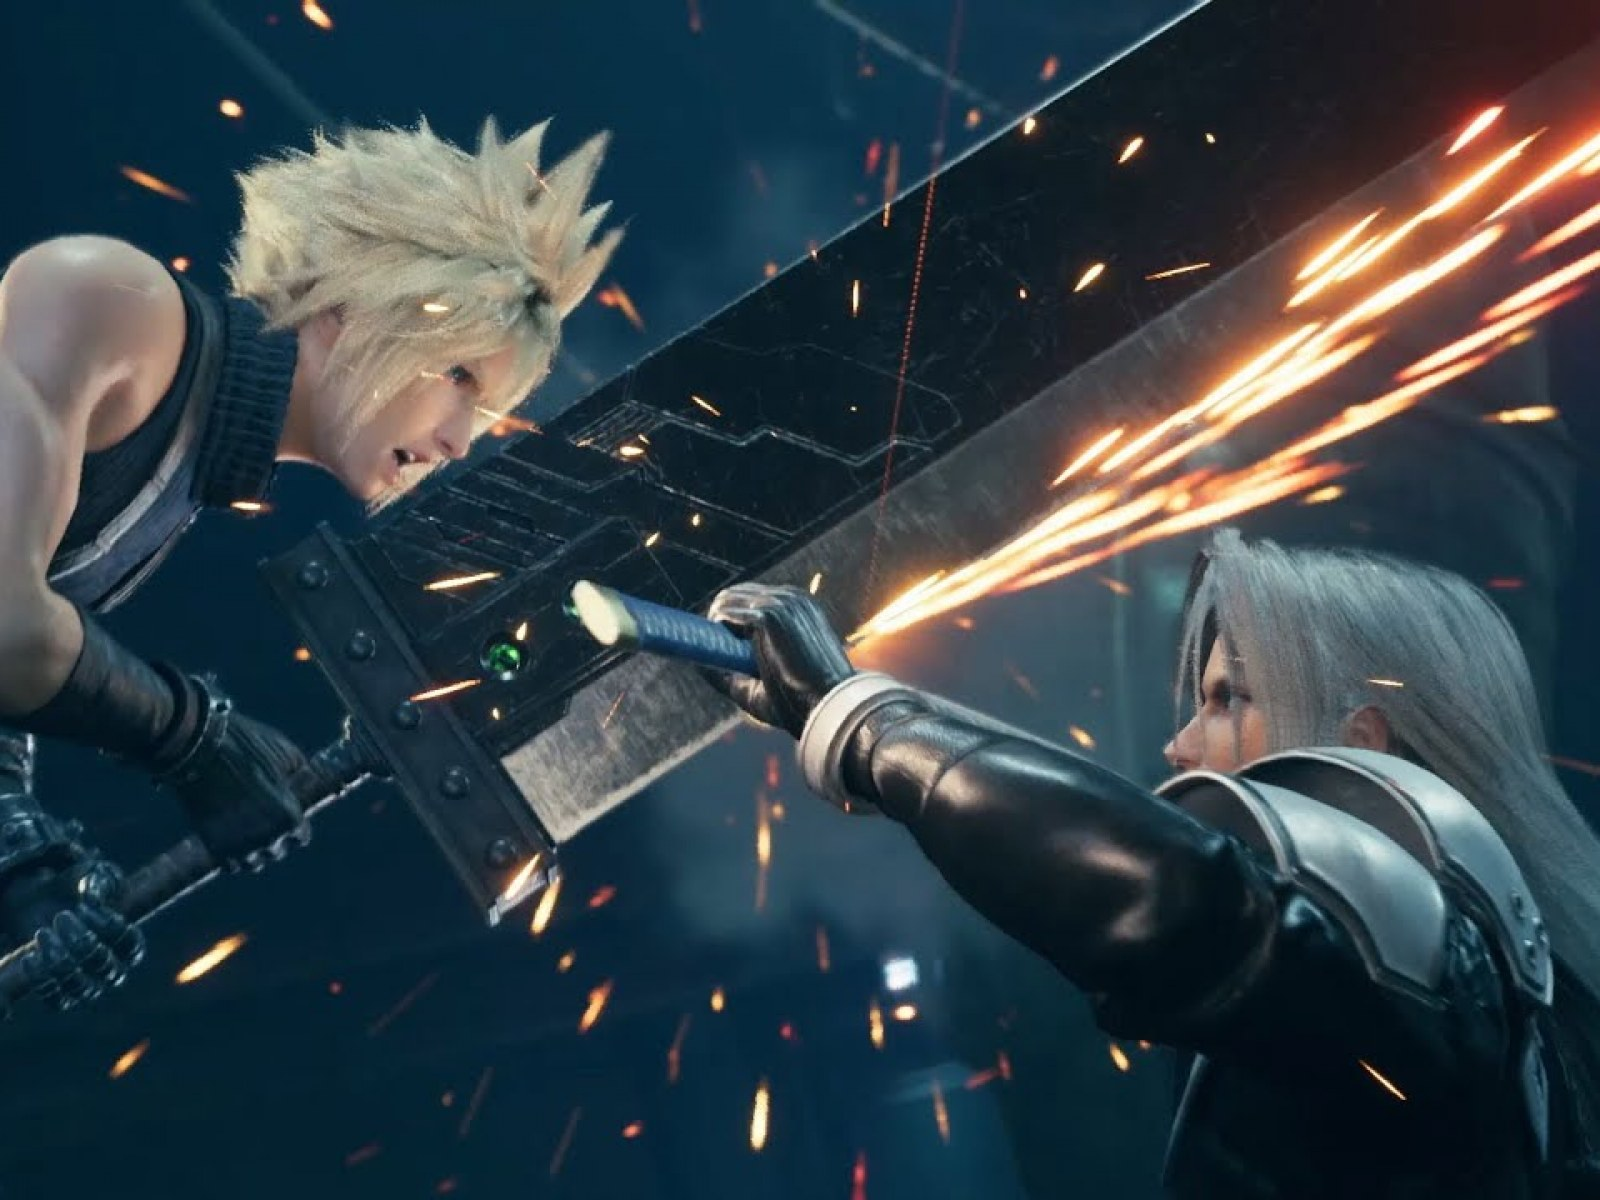 Final Fantasy 7 Remake Release Time When Can You Play As Cloud